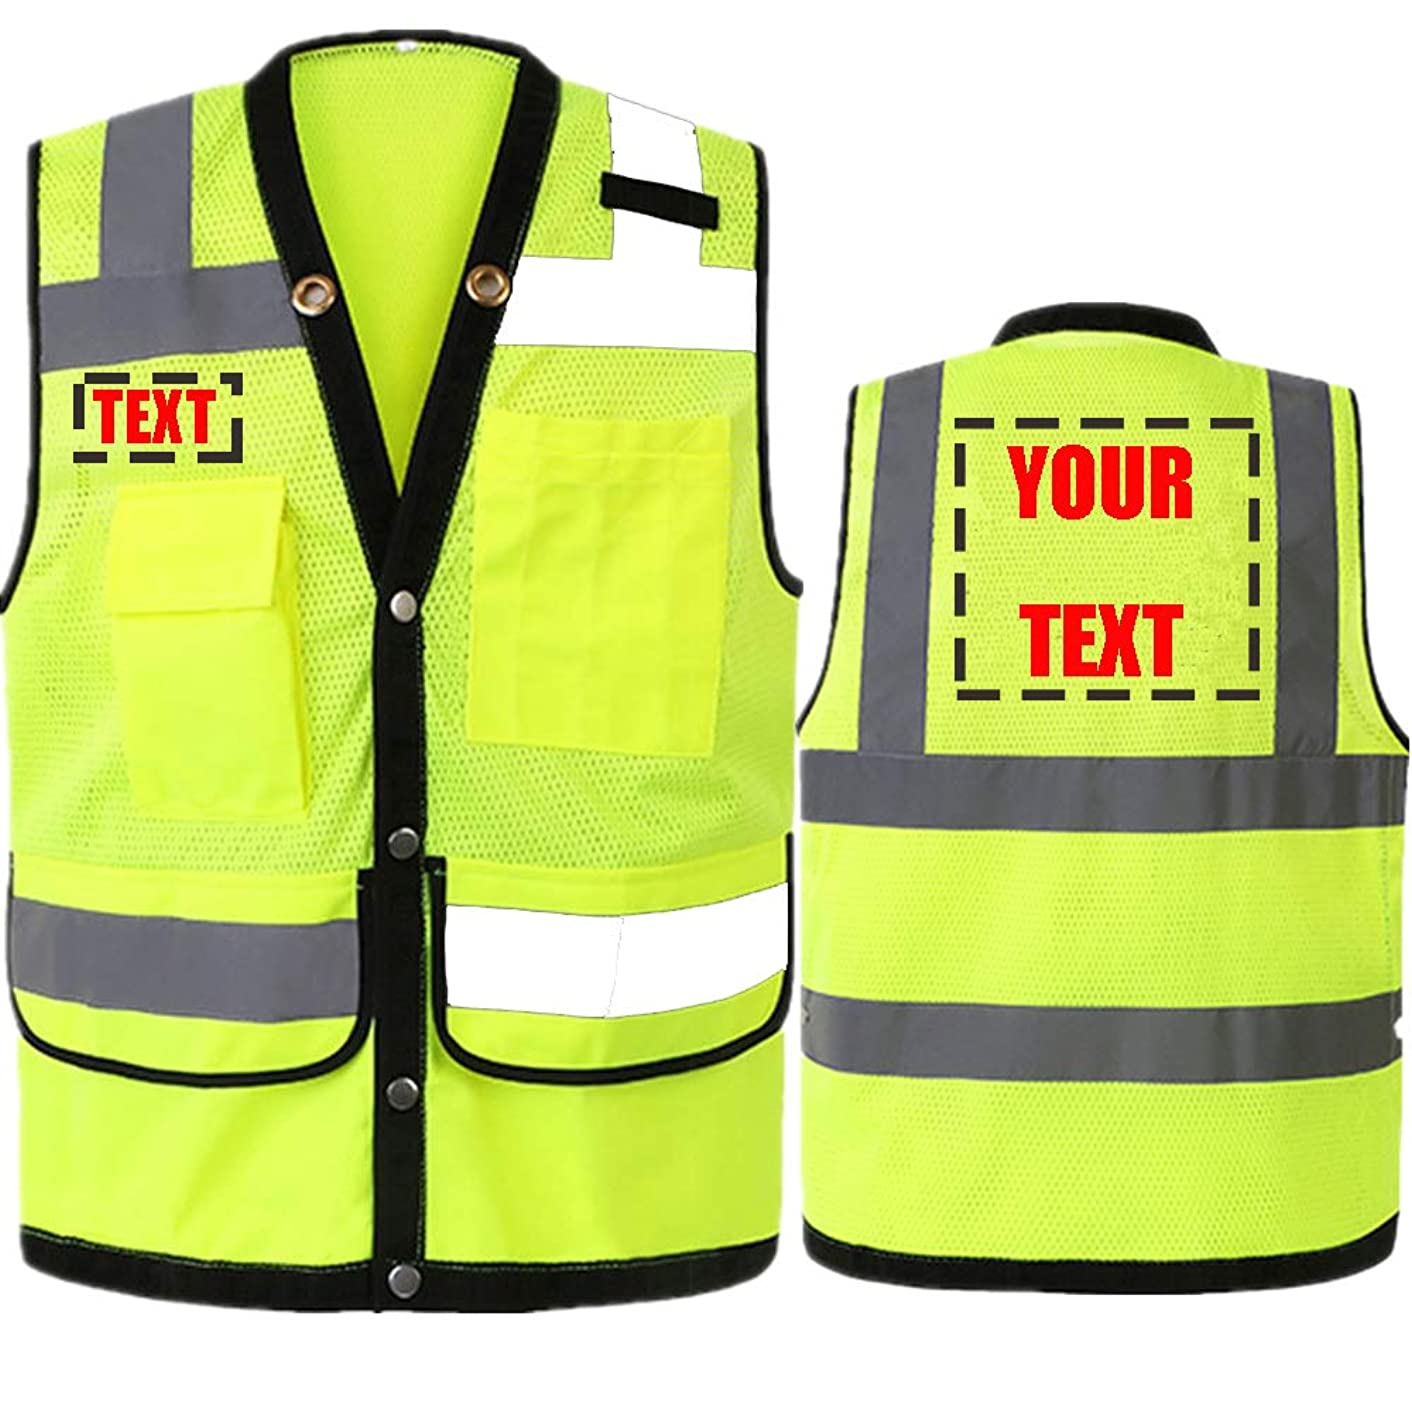 4 Large Pockets Class 2 High Visibility Safety Vest With Snap Button Front Safety Vest With Reflective Strips.Meets ANSI/ISEA Standards (Neon Yellow L)